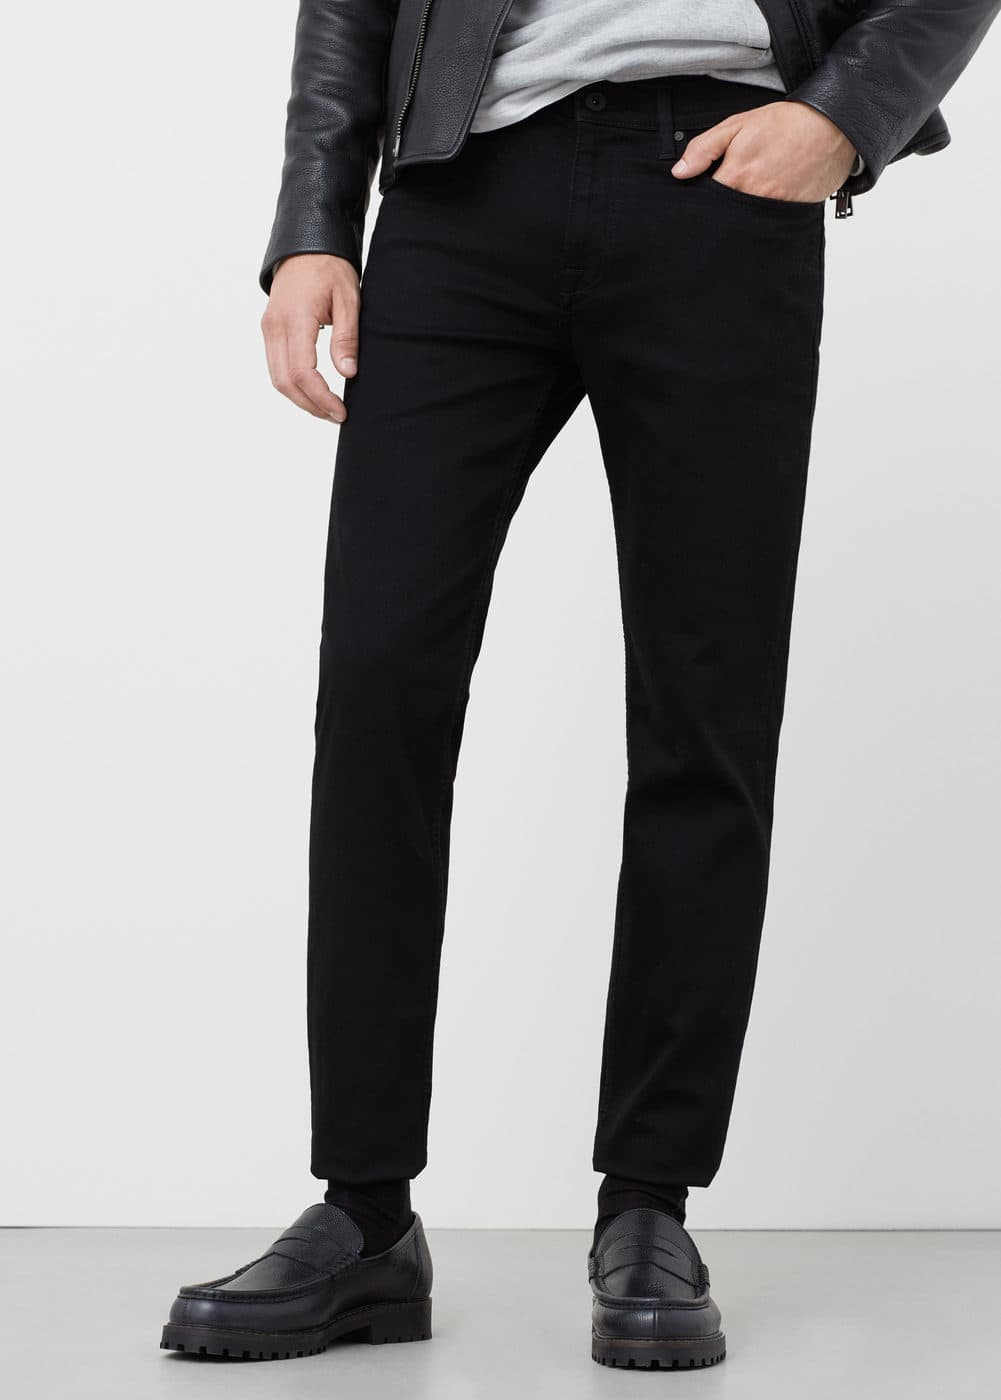 Jeans jan slim-fit negros | MANGO